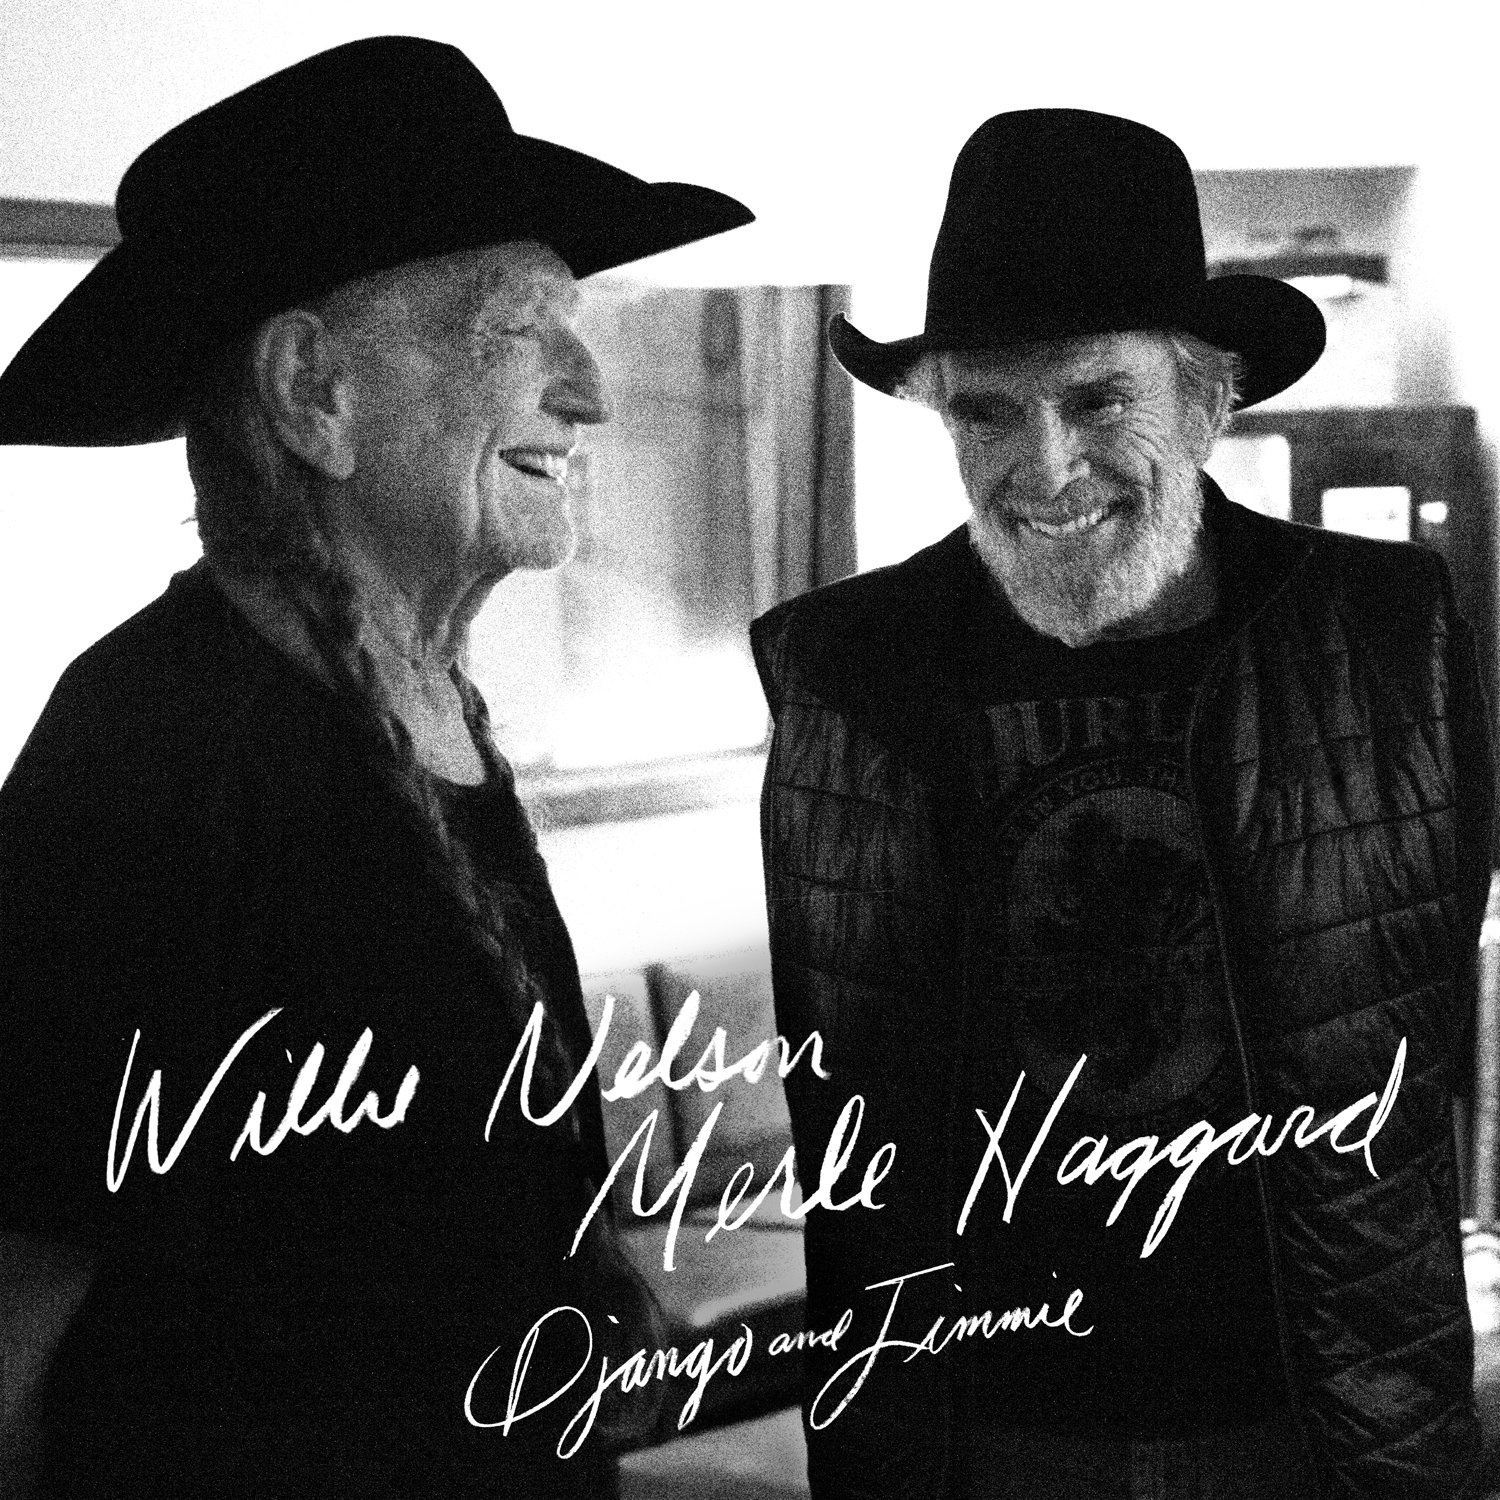 Outlaw Country Legends Willie Nelson & Merle Haggard Reunite for Django and Jimmie, A New Album Collaboration Premiering 14 Fresh Studio Tracks